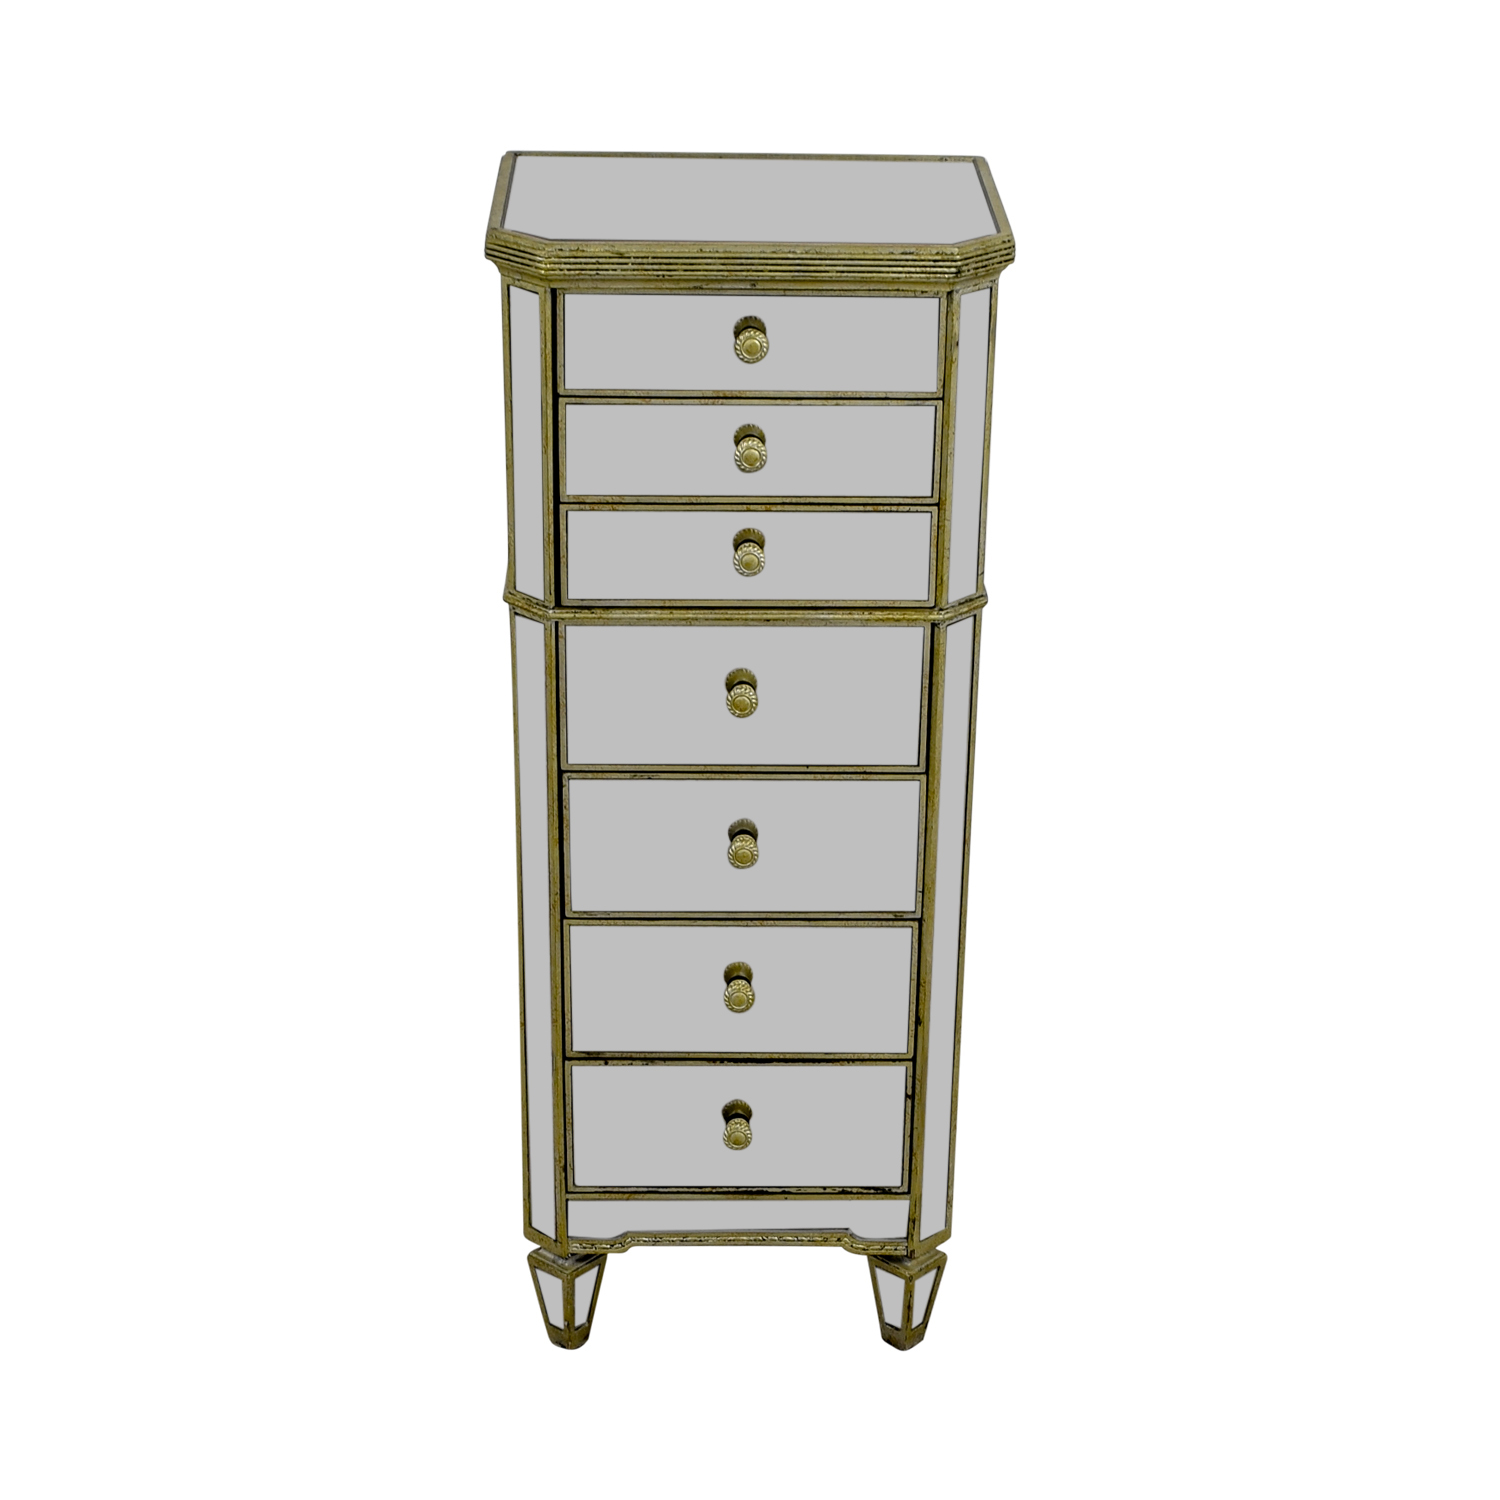 Horchow Horchow Mirrored Seven-Drawer Tall Chest Dresser second hand